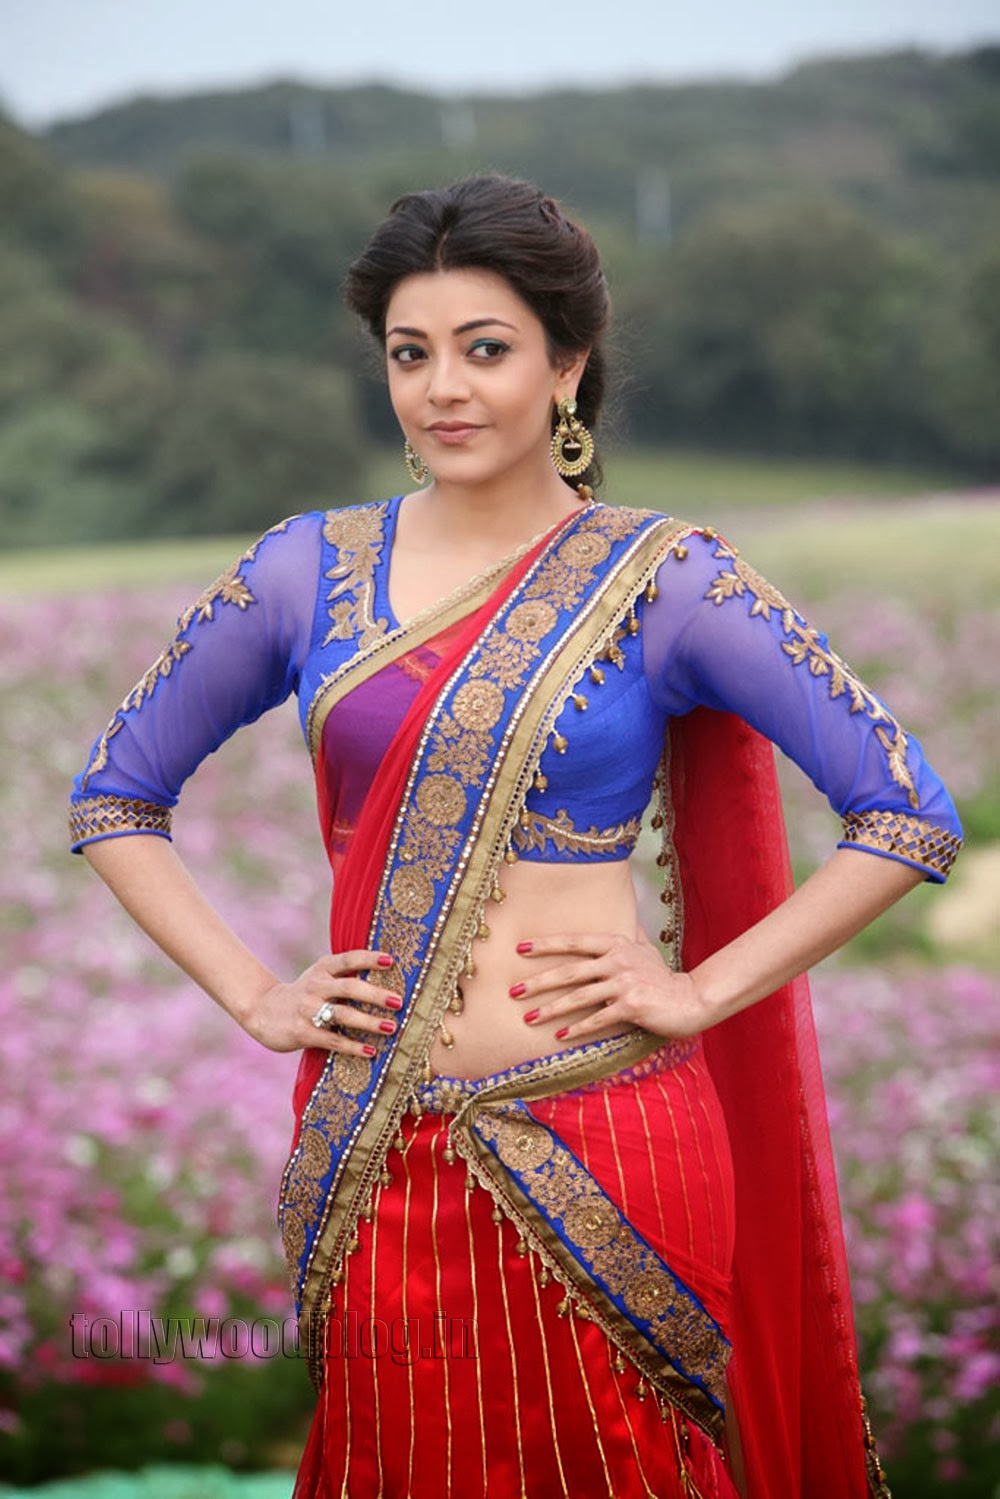 kajal agarwal traditional dress - photo #24